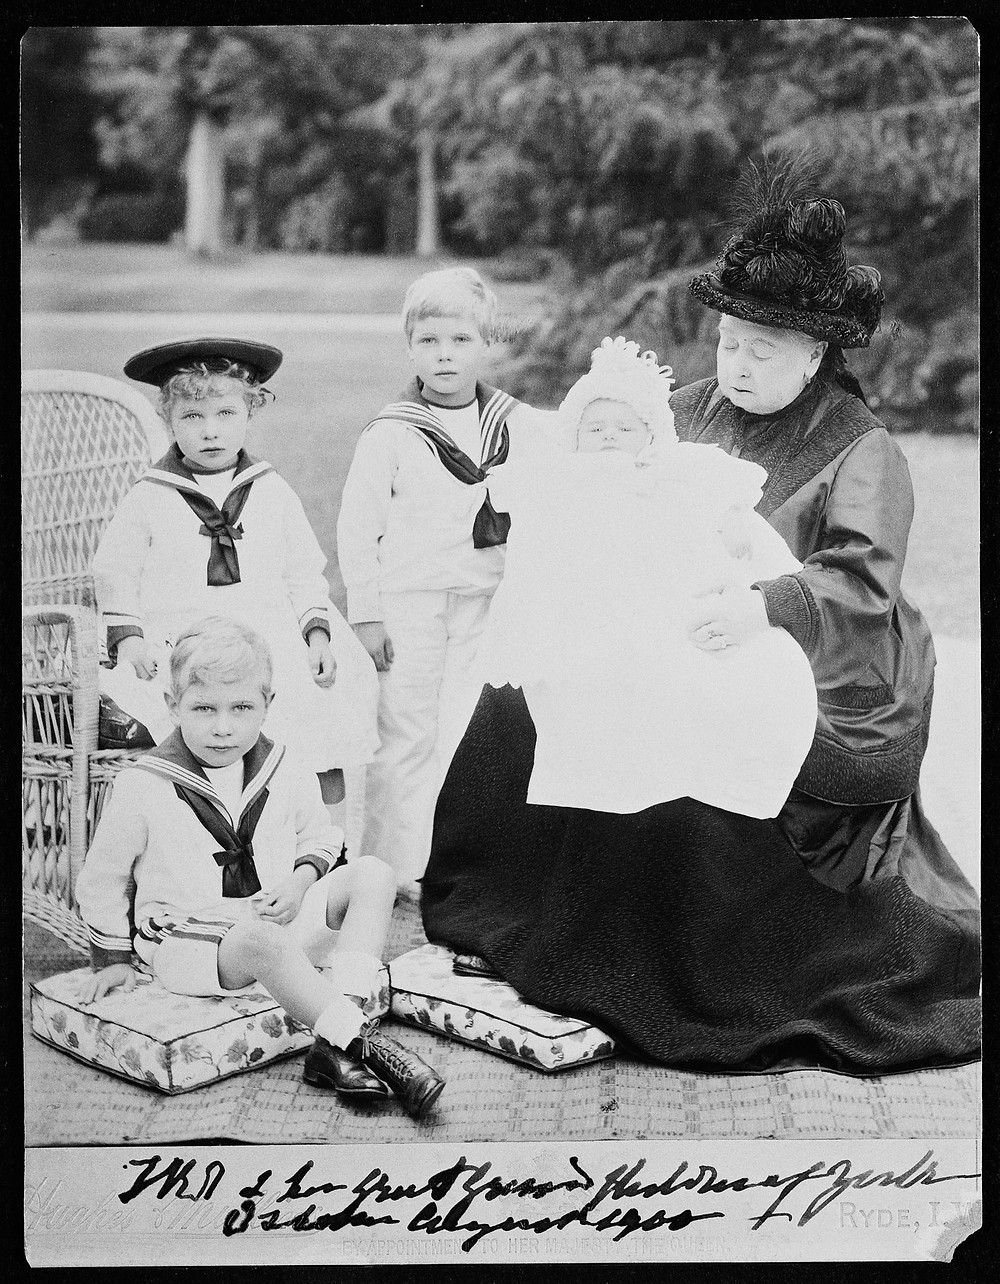 Photograph of Queen Victoria in the garden at Osborne with four of her great-grandchildren; Prince Edward (1894-1972); Prince Albert (1895-1952); Princess Mary (1897-1965) and Prince Henry of York (1900-1974)